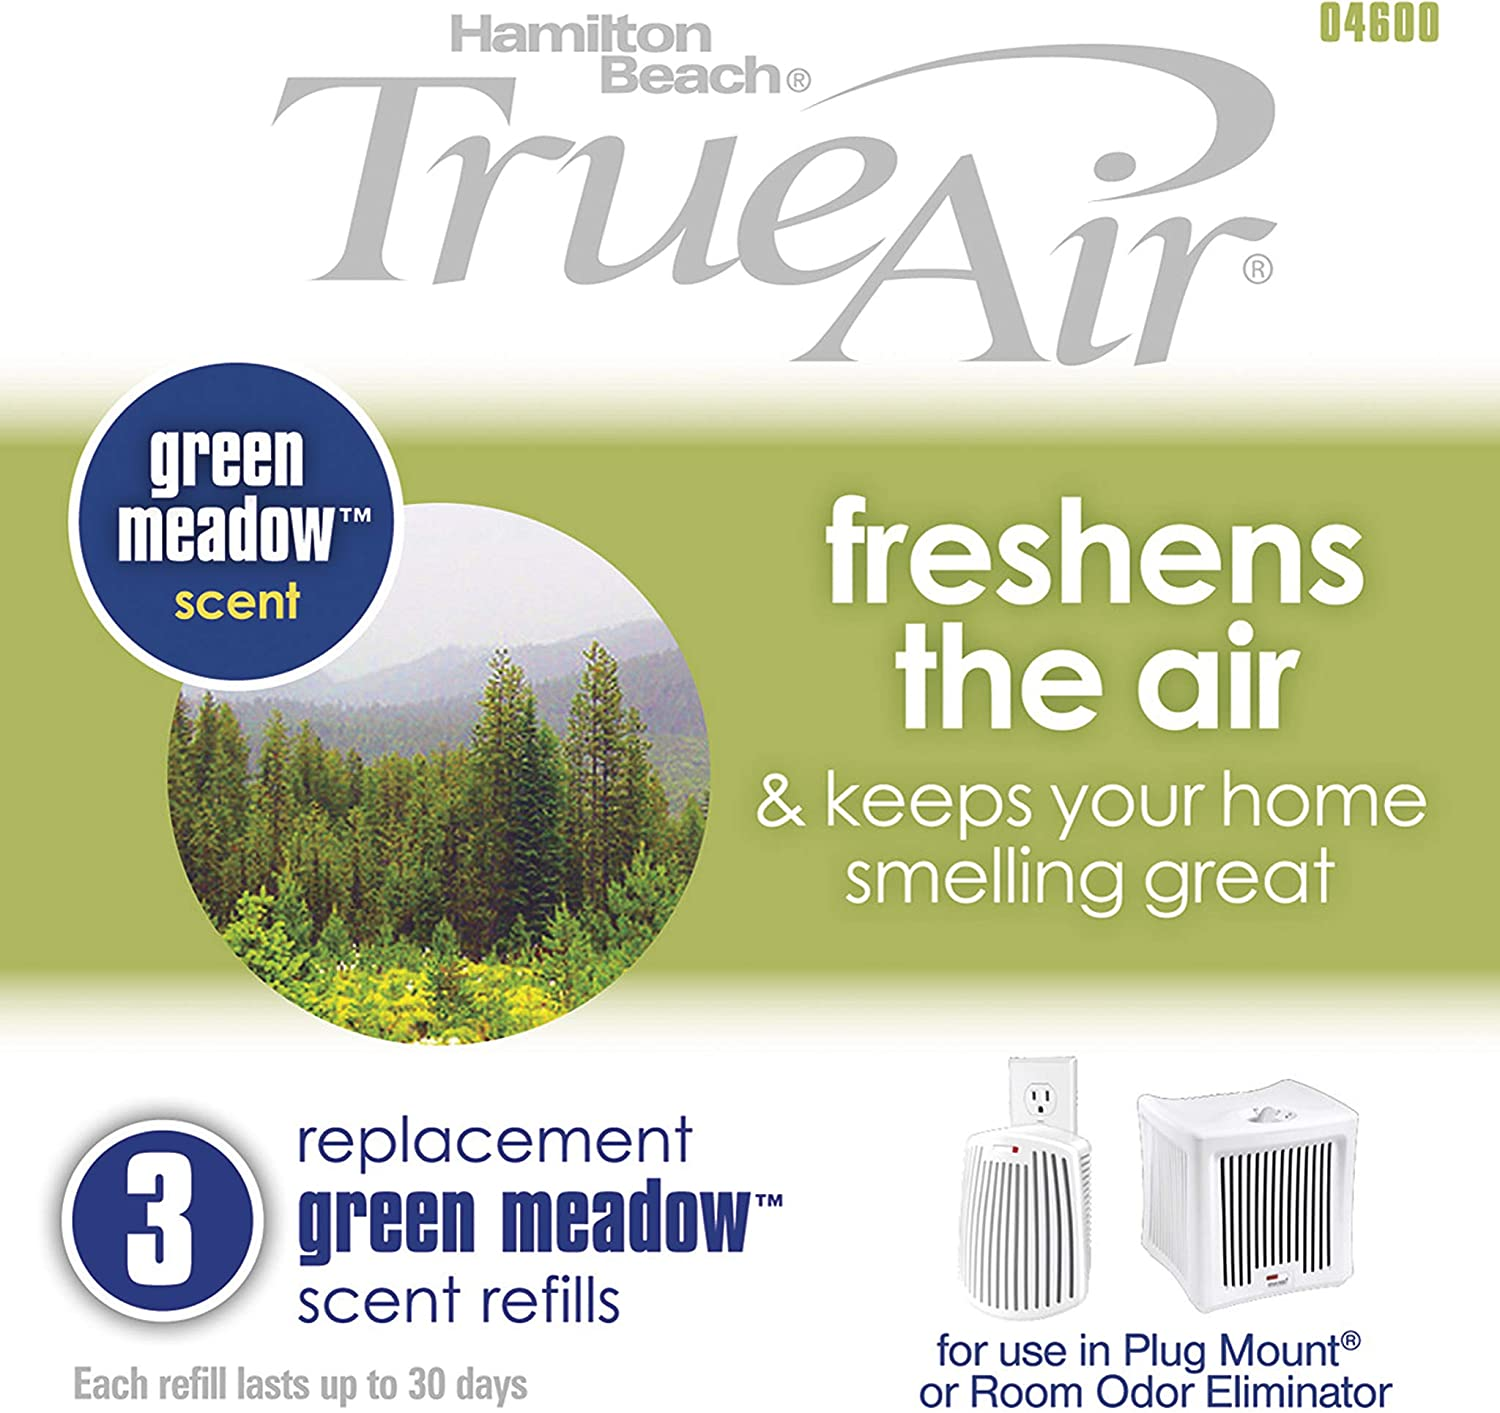 Hamilton Beach Replacement Green Meadow Scent Refills for TrueAir Plug Mount 04531GM and Odor Eliminator 04532GM 04600